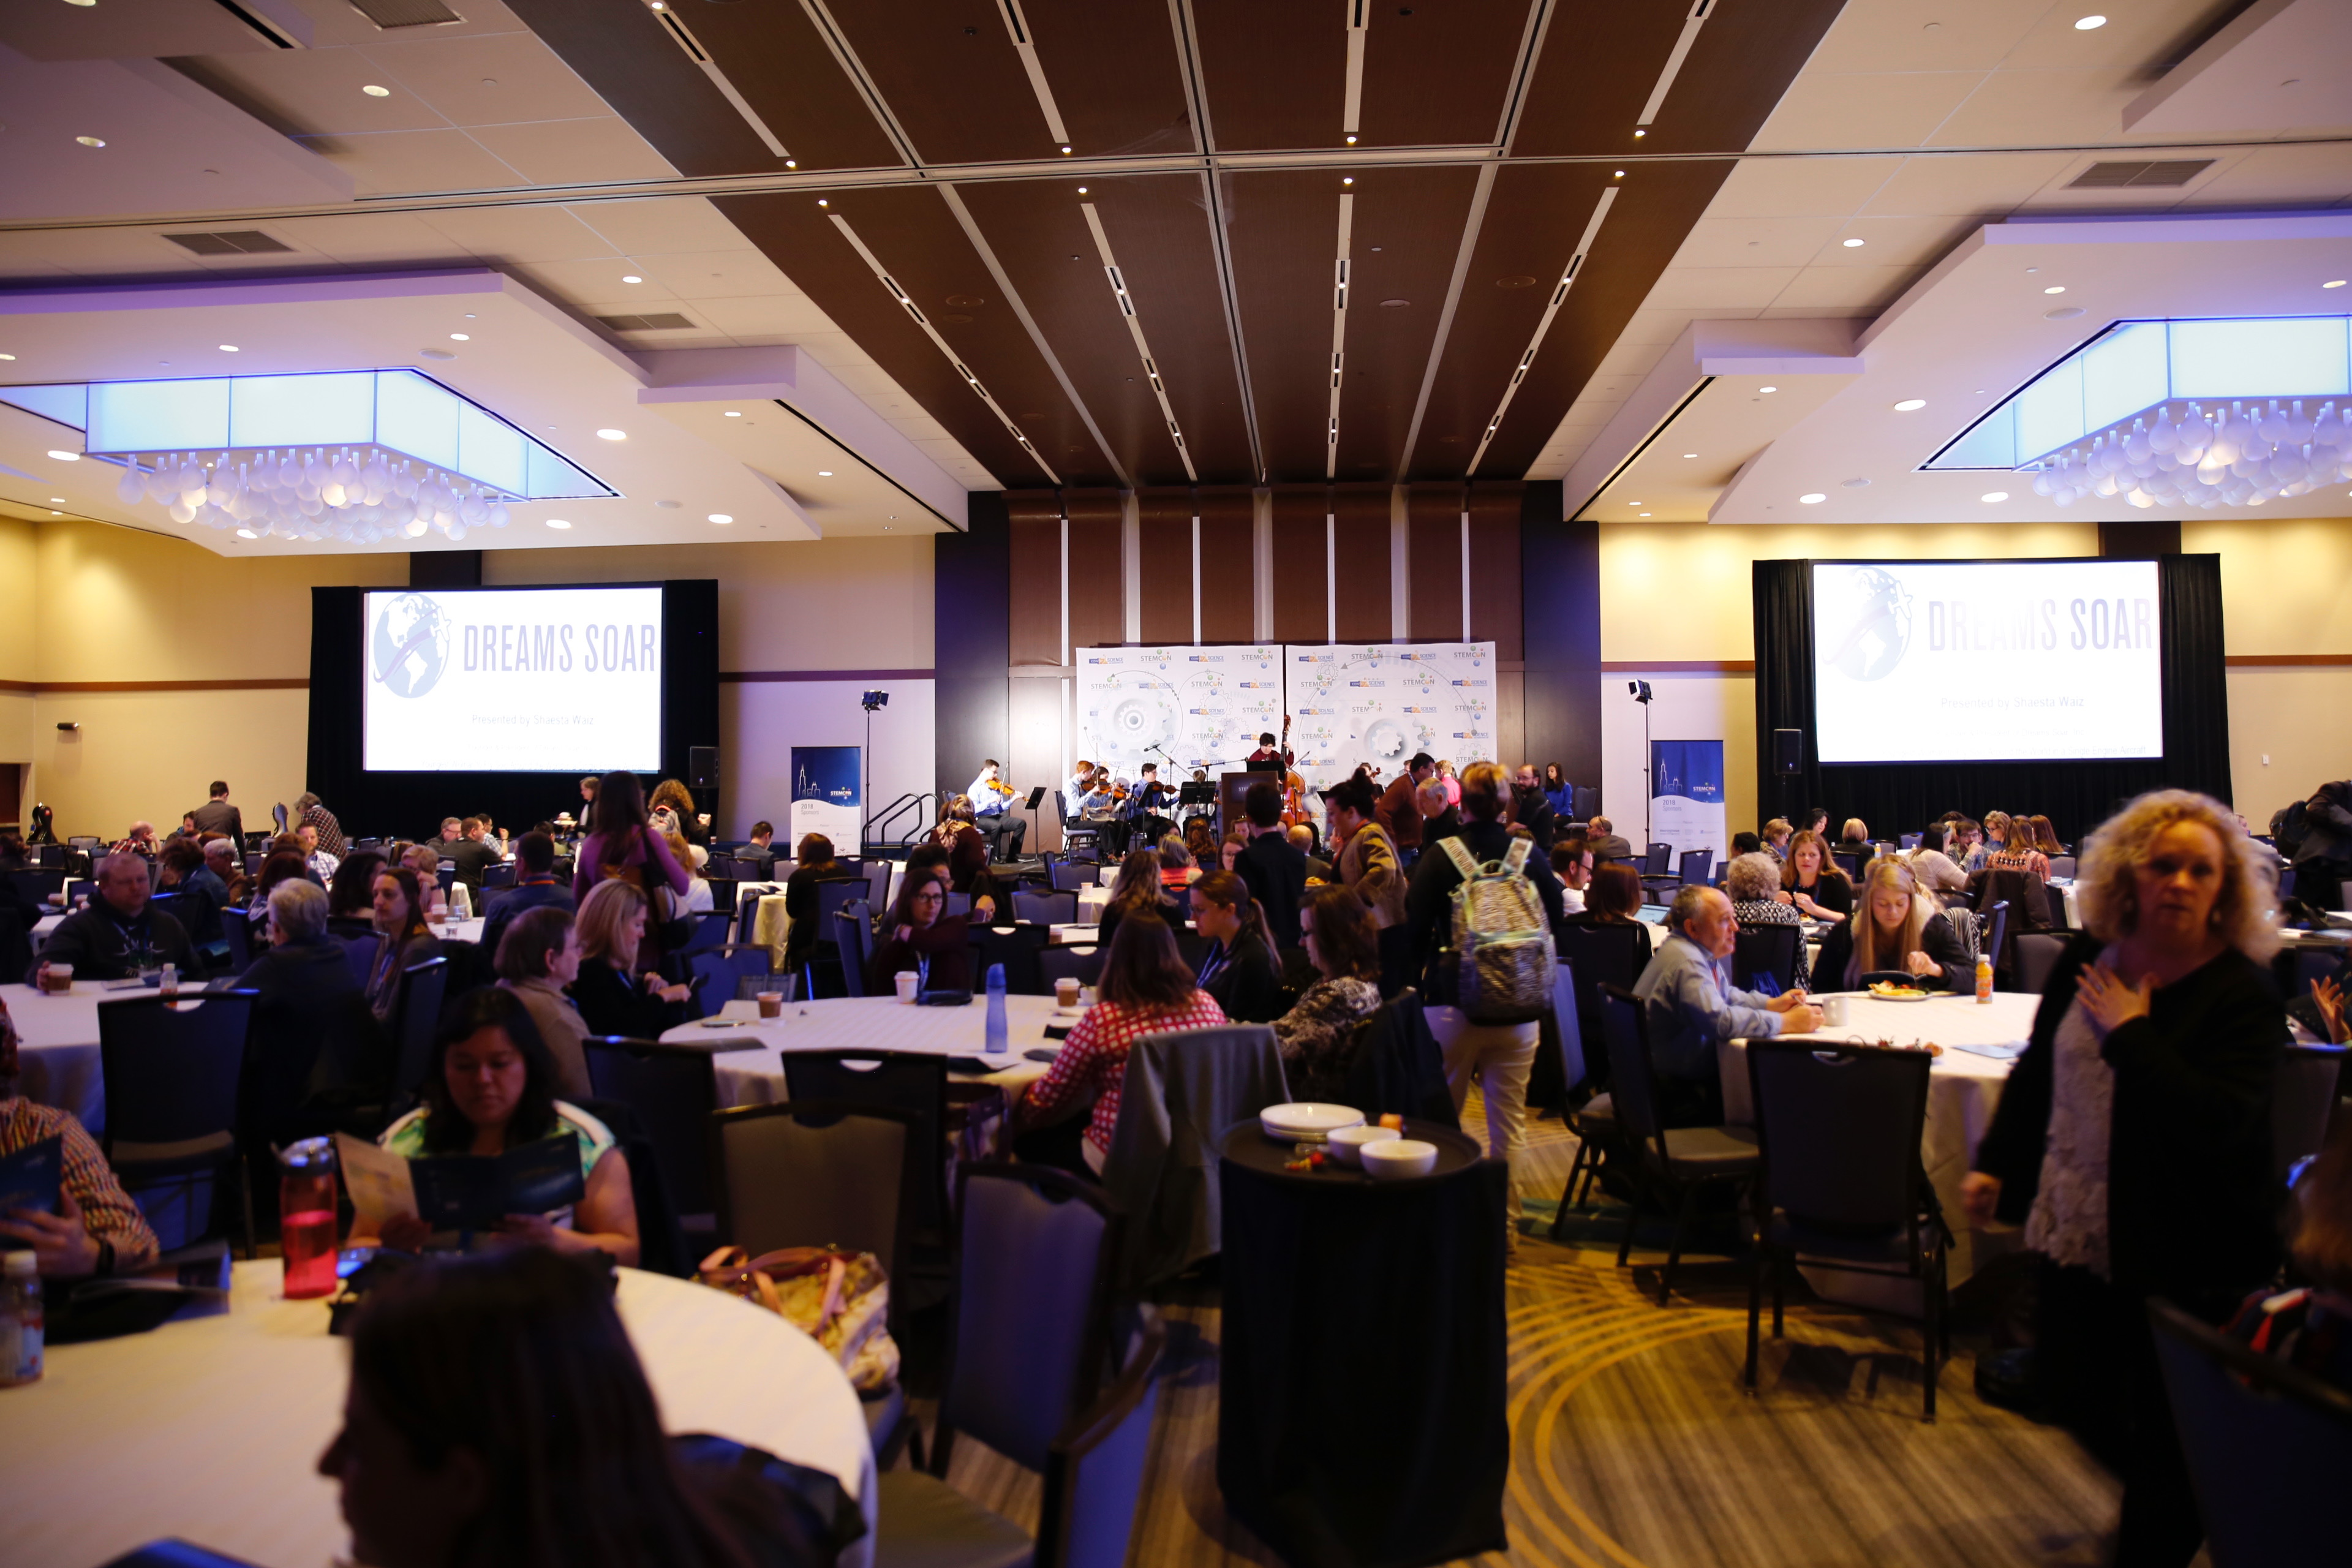 STEMCON - STEM Conference 2018 | 5th Annual STEM Conference